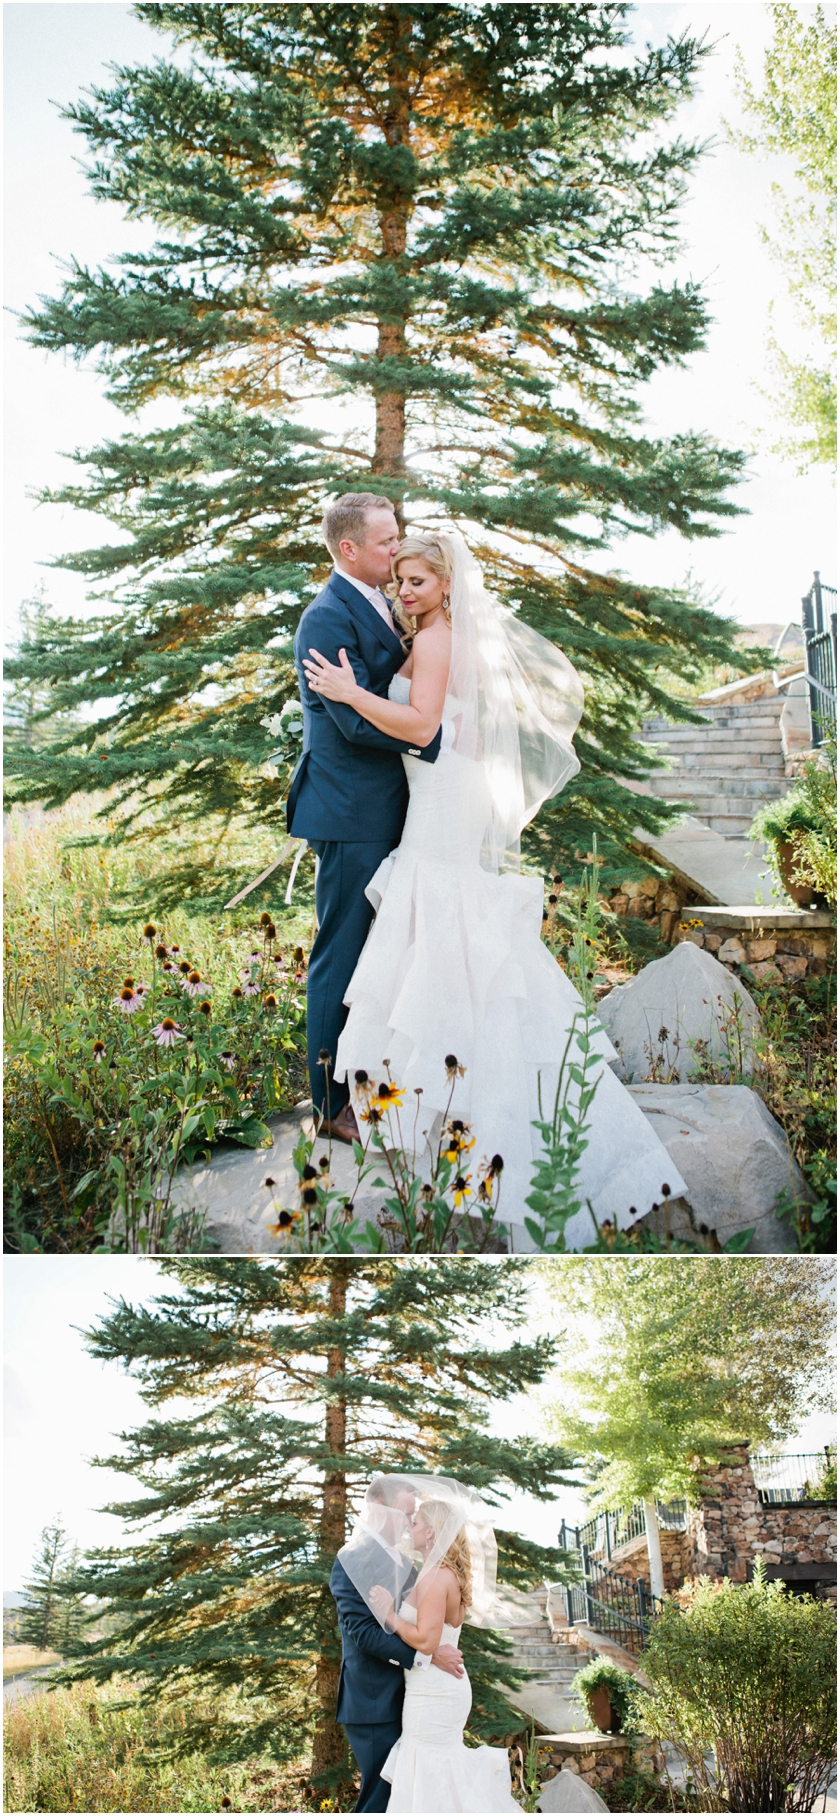 087Sioux City Iowa Wedding Photographer Amy Cloud Photography